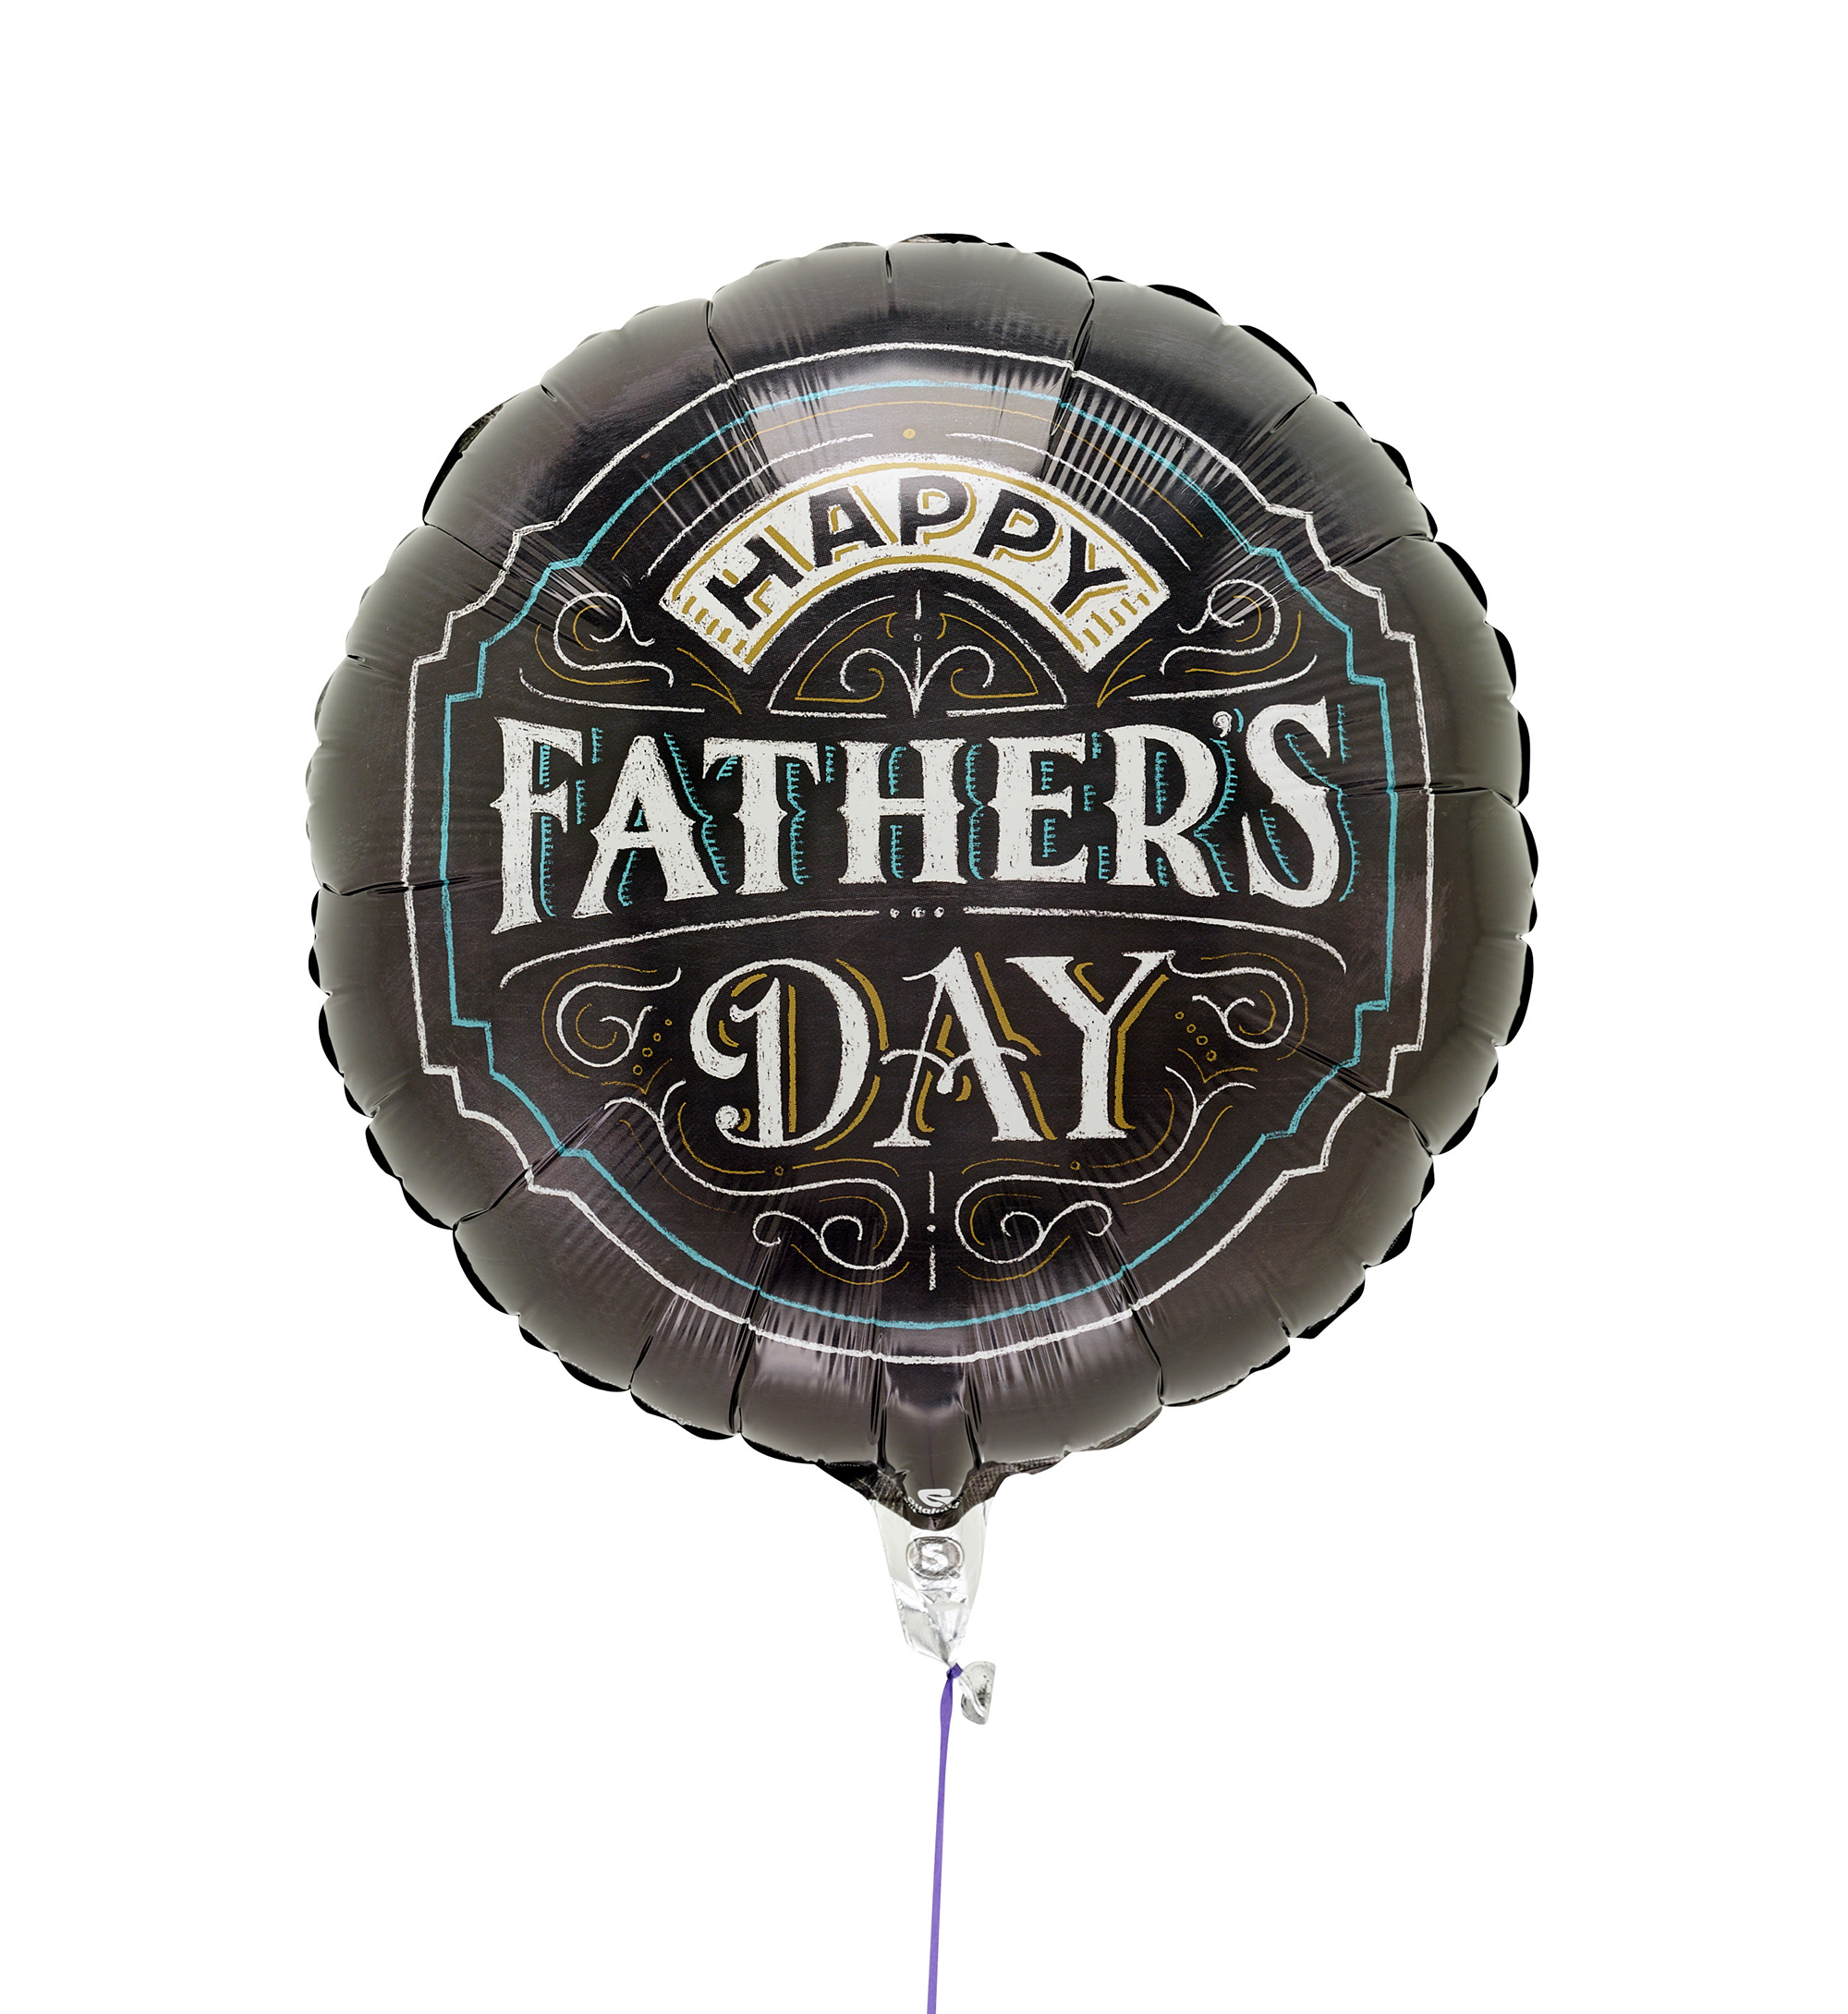 ballon-vaderdag-happy-fathersday